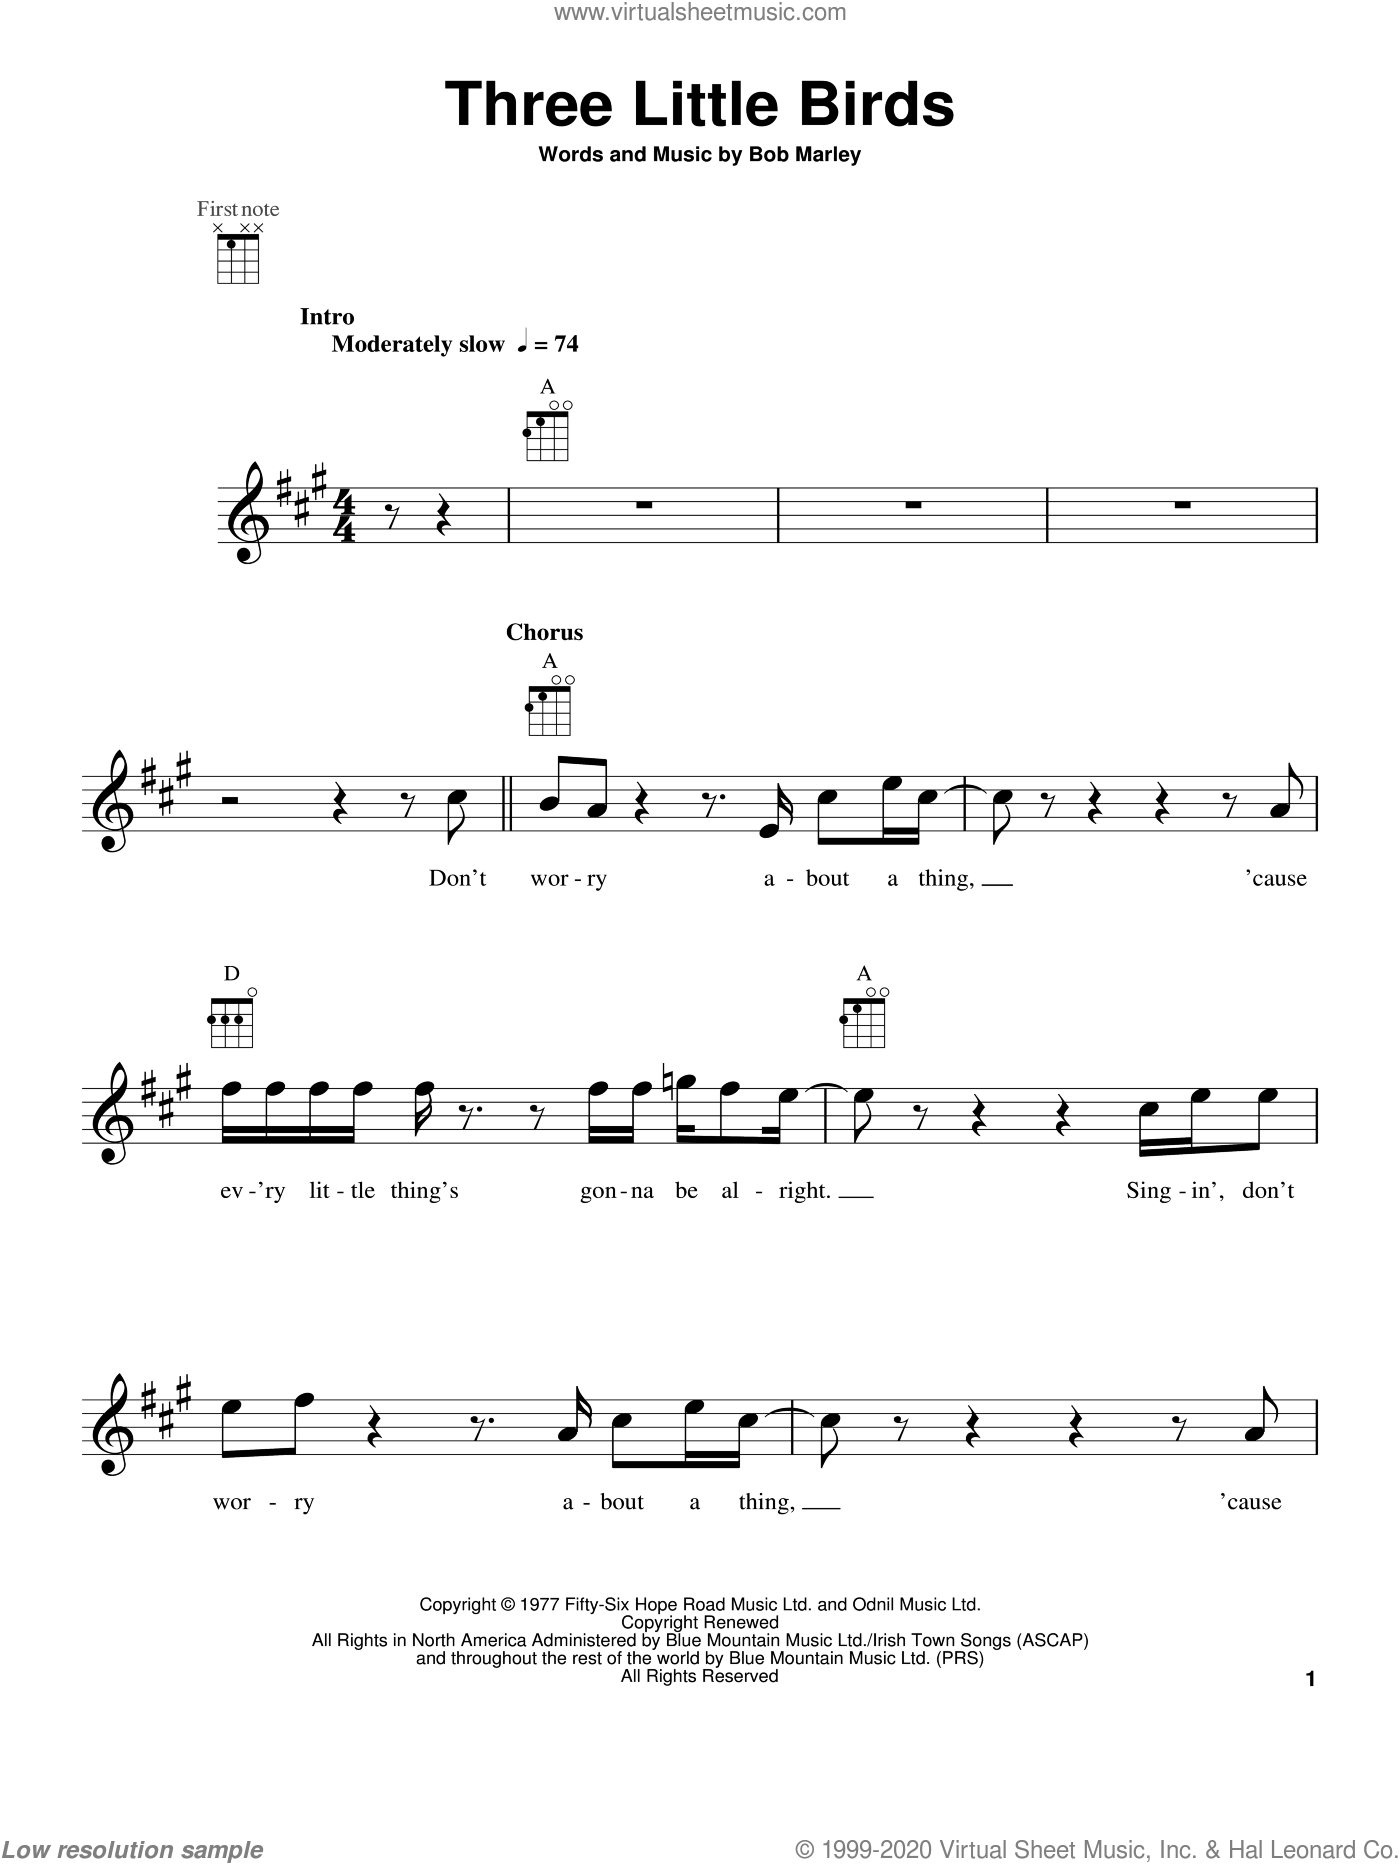 Three Little Birds sheet music for ukulele by Bob Marley, intermediate skill level